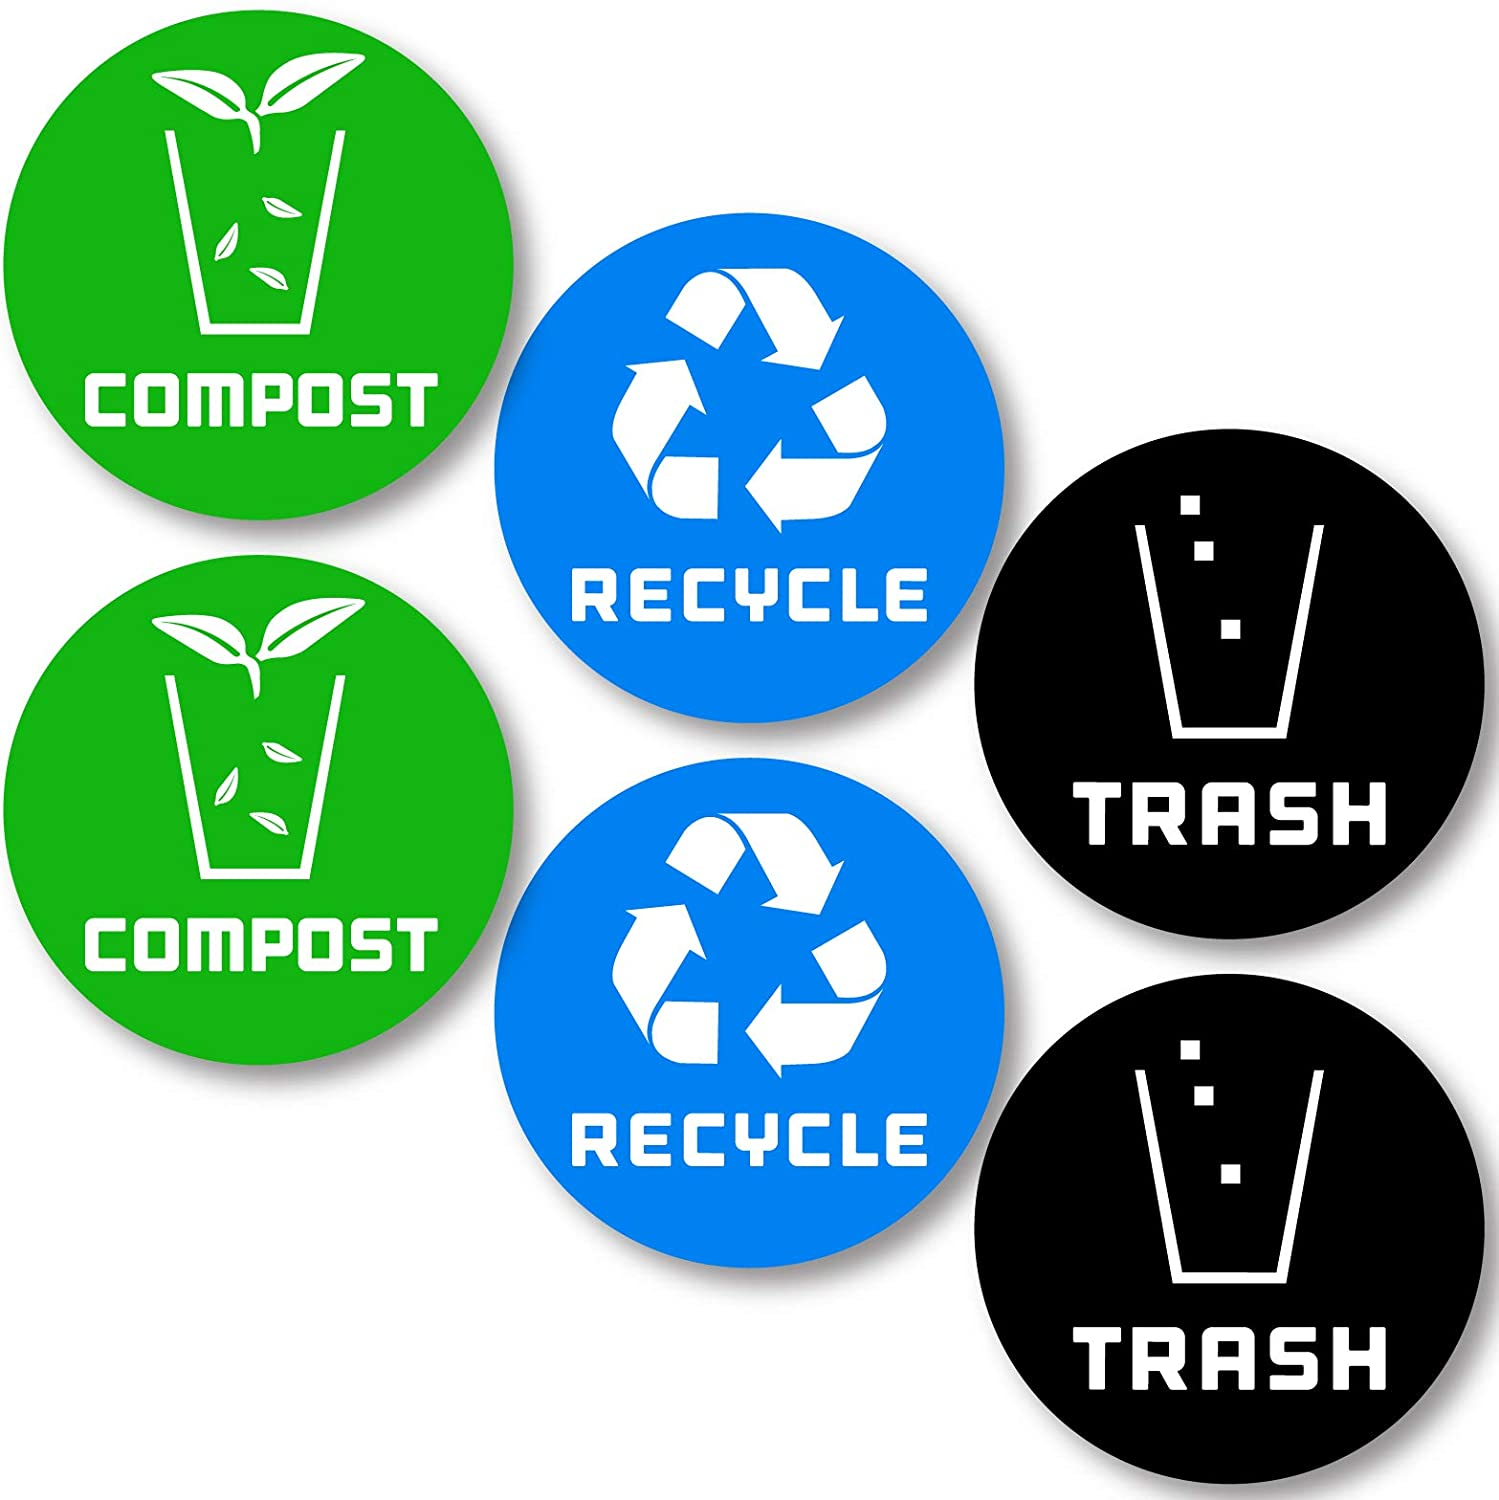 2 Inch Round Recycle and Landfill Sticker Set Laminated 20 Sets